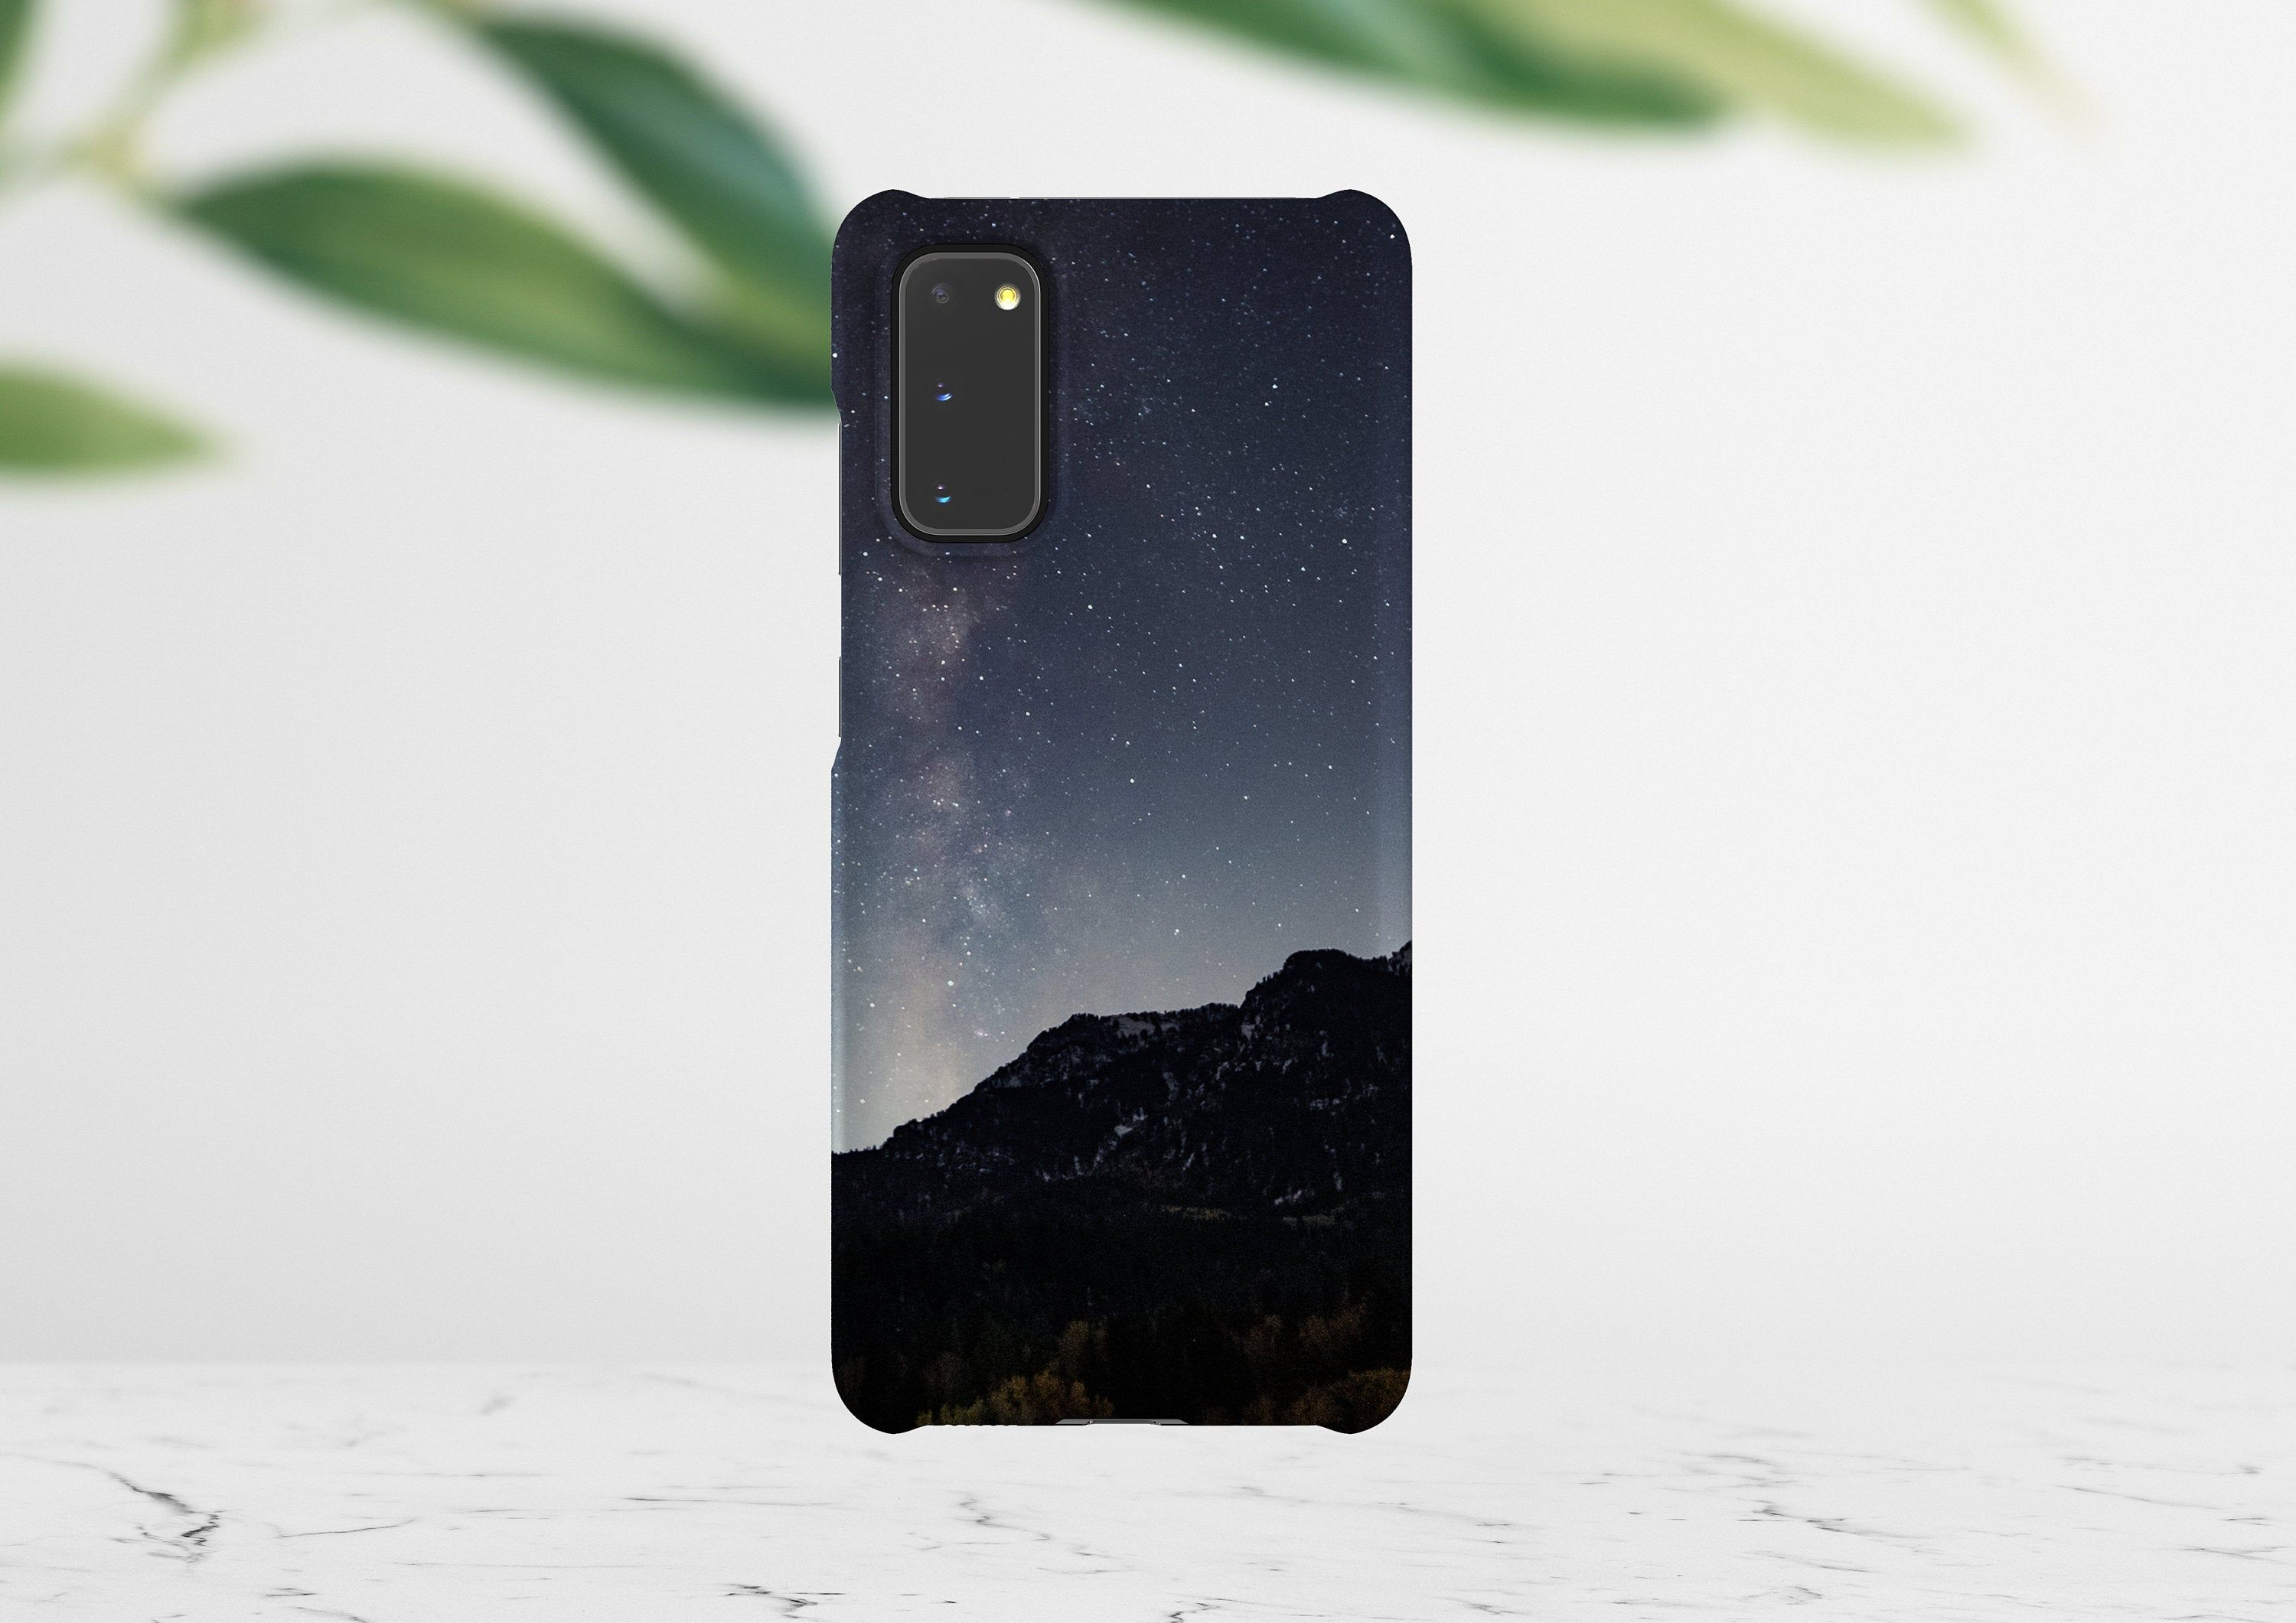 Stars & Sky Galaxy S20 Case Galaxy S20 Ultra Case Galaxy S10 Case Galaxy S10e Case Galaxy S10 Plus Case Galaxy Note 9 Galaxy Note 10 #GalaxyS10eCase #GalaxyNote10Case #GalaxyS9Case #GalaxyA70 #GalaxyNote8 #GalaxyS10Case #GalaxyS10PlusCase #GalaxyS9PlusCase #GalaxyNote9Case #GalaxyNote10Plus